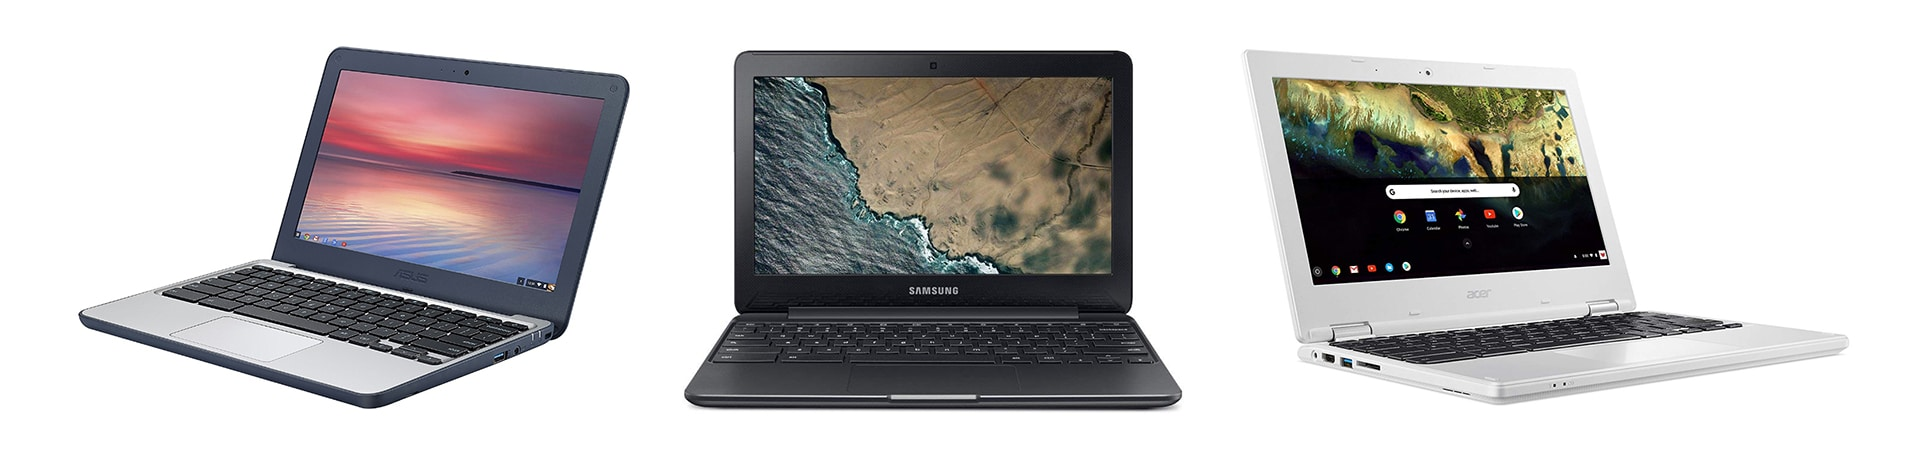 Some of the affordable Chromebooks